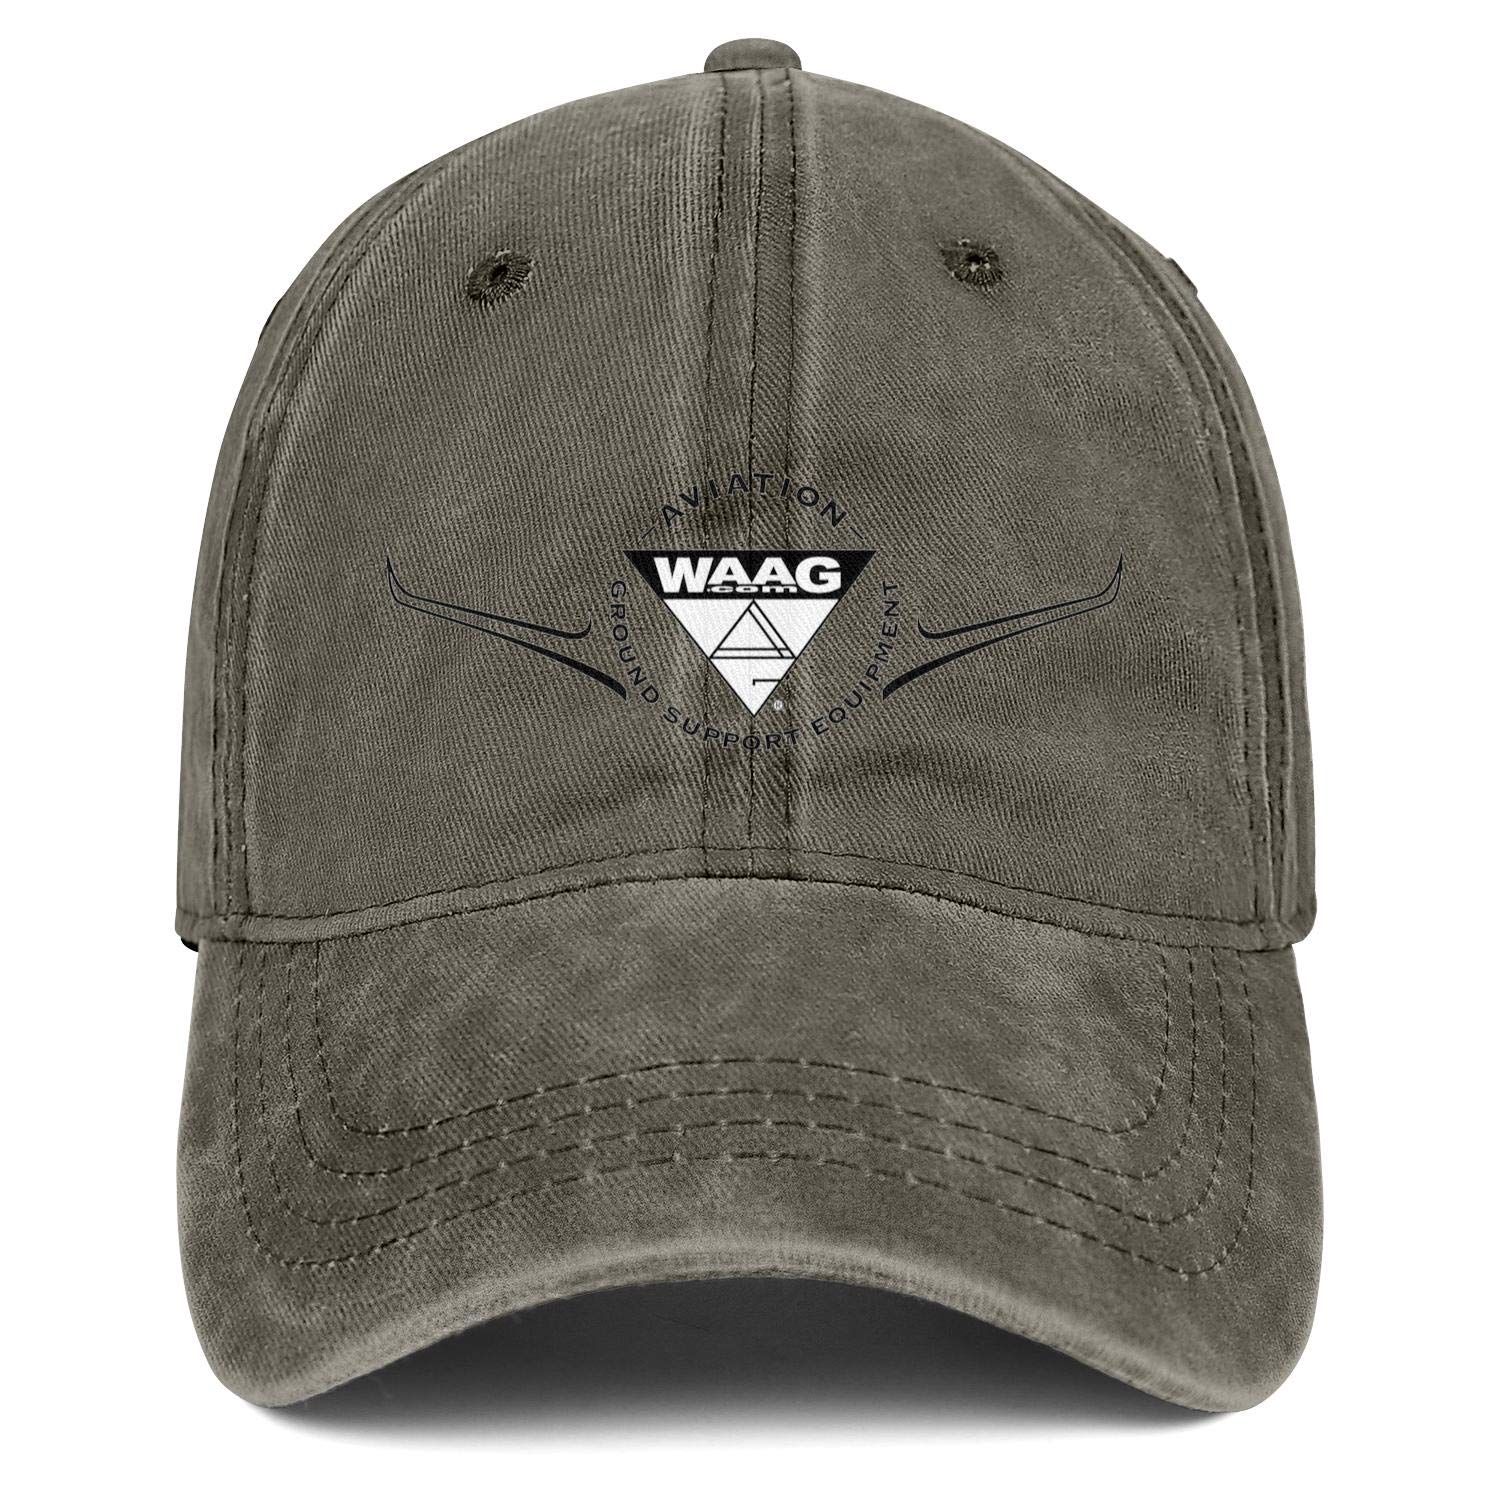 Waag Society Mens Womens Vintage Trucker Hats Visor Horsetail Hat